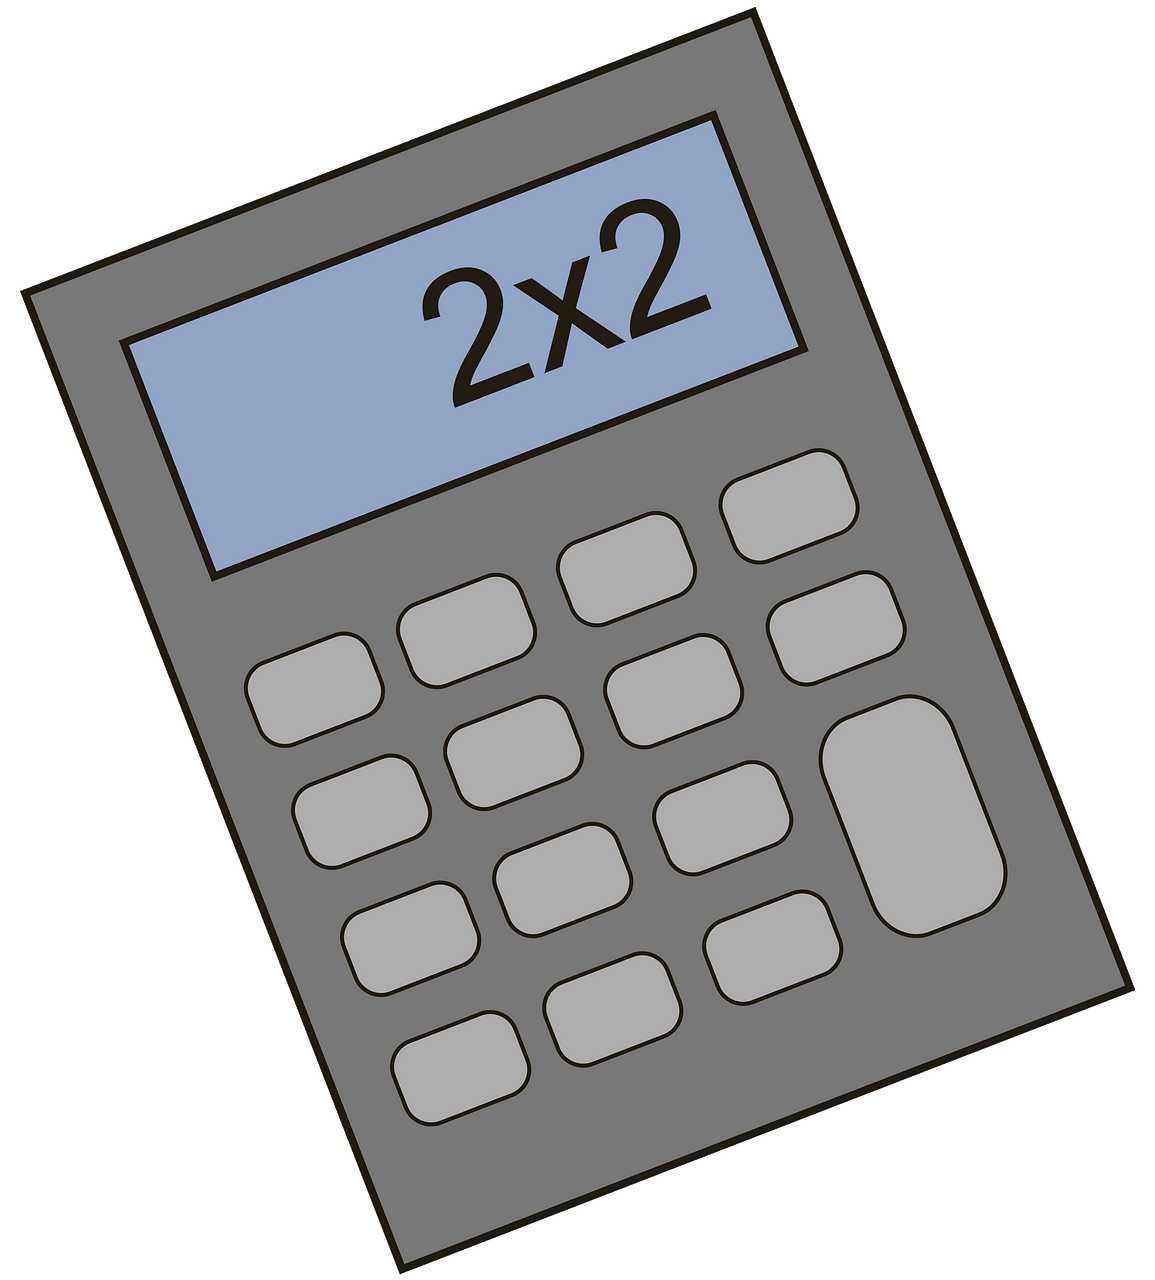 Calculator clipart. Free download..